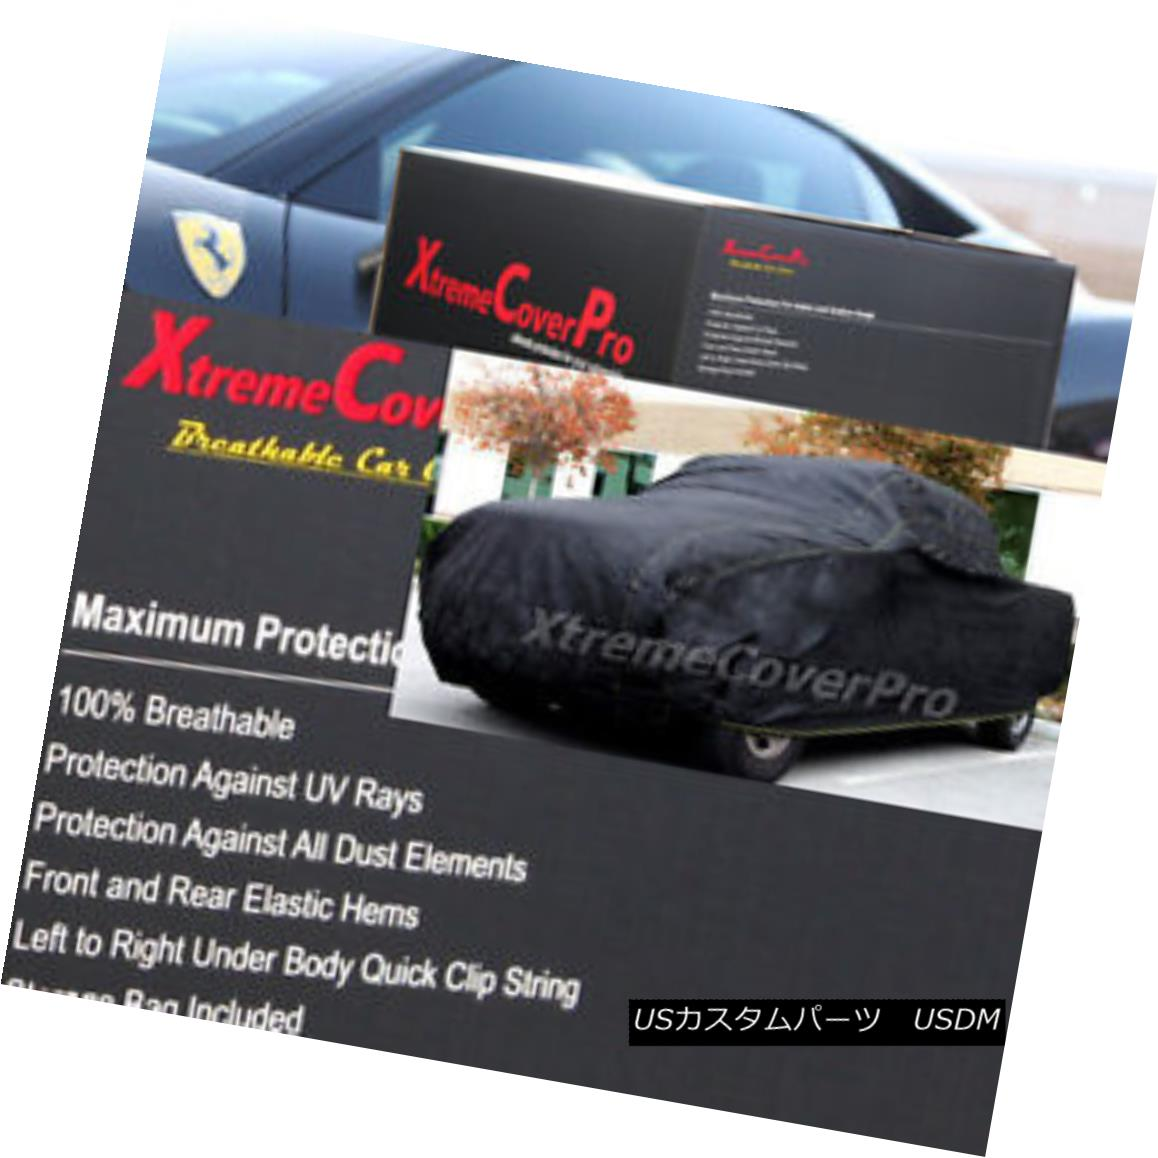 カーカバー 2014 Ford F-150 Reg Cab 6.8ft Bed Breathable Truck Cover 2014 Ford F-150 Reg Cab 6.8ftベッド通気性トラックカバー